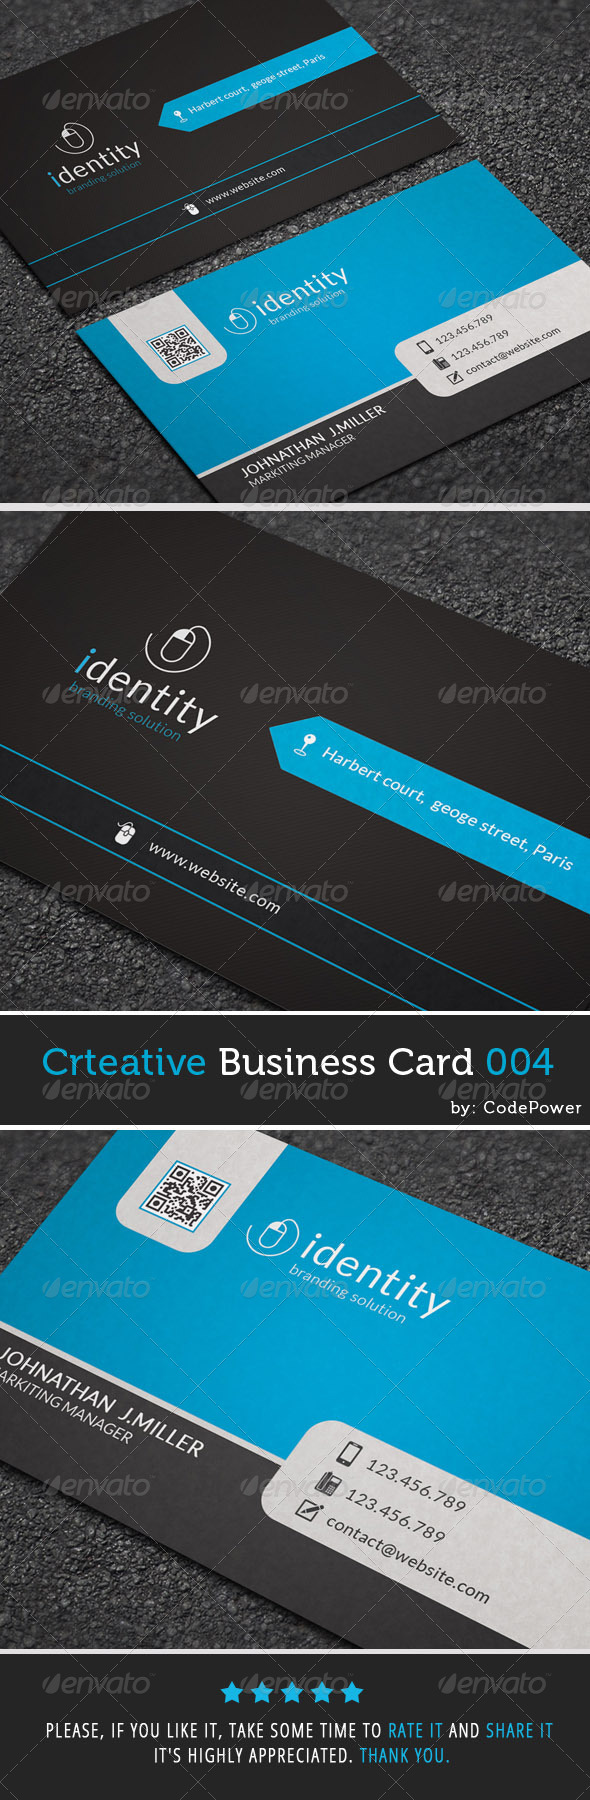 GraphicRiver Creative Business Card 004 7747704